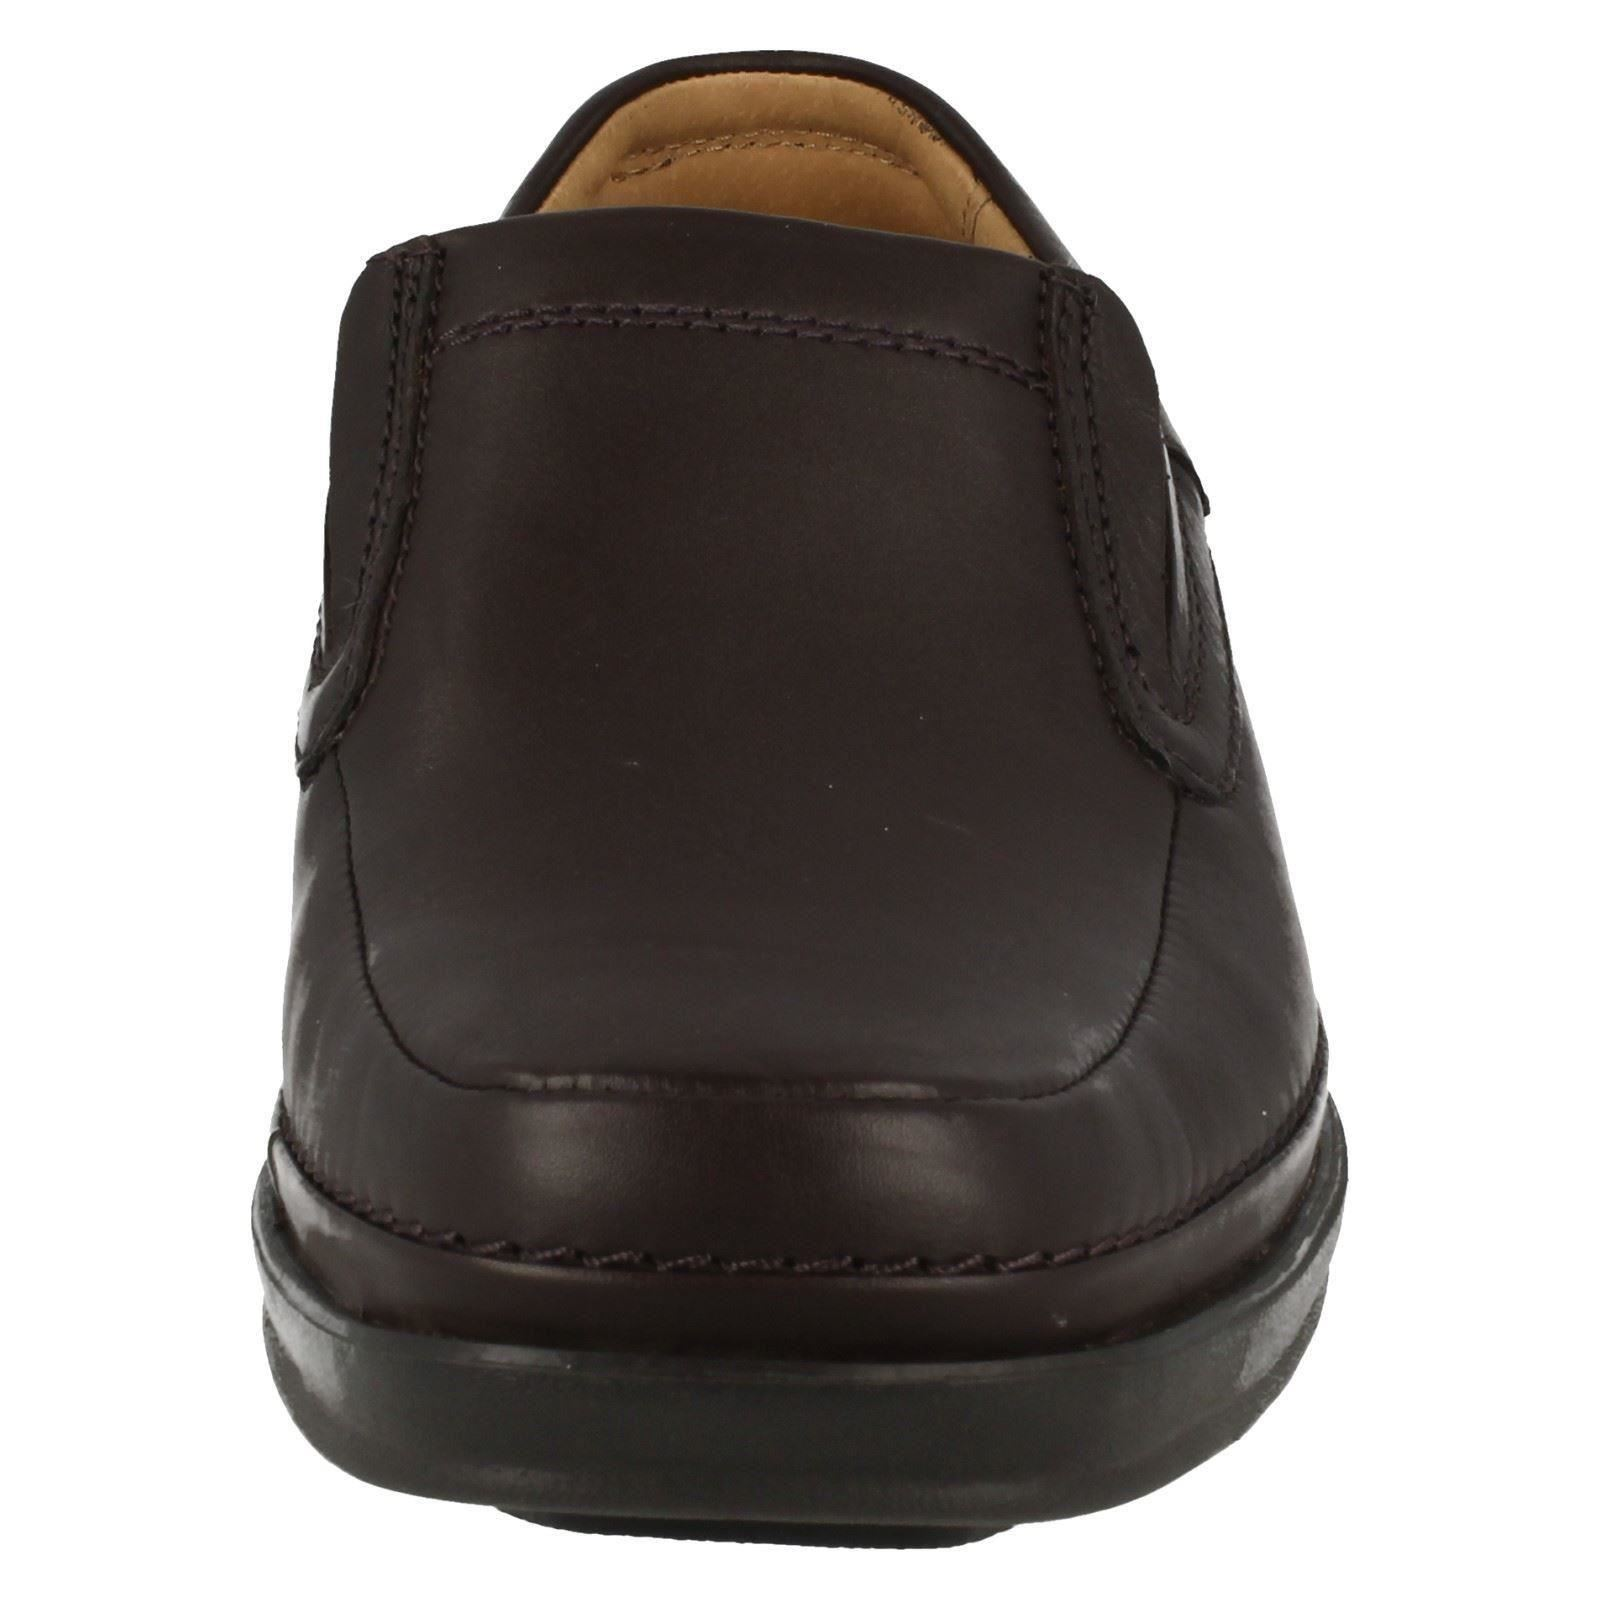 Mens Clarks Extra Wide Slip On Shoes Scopic Step